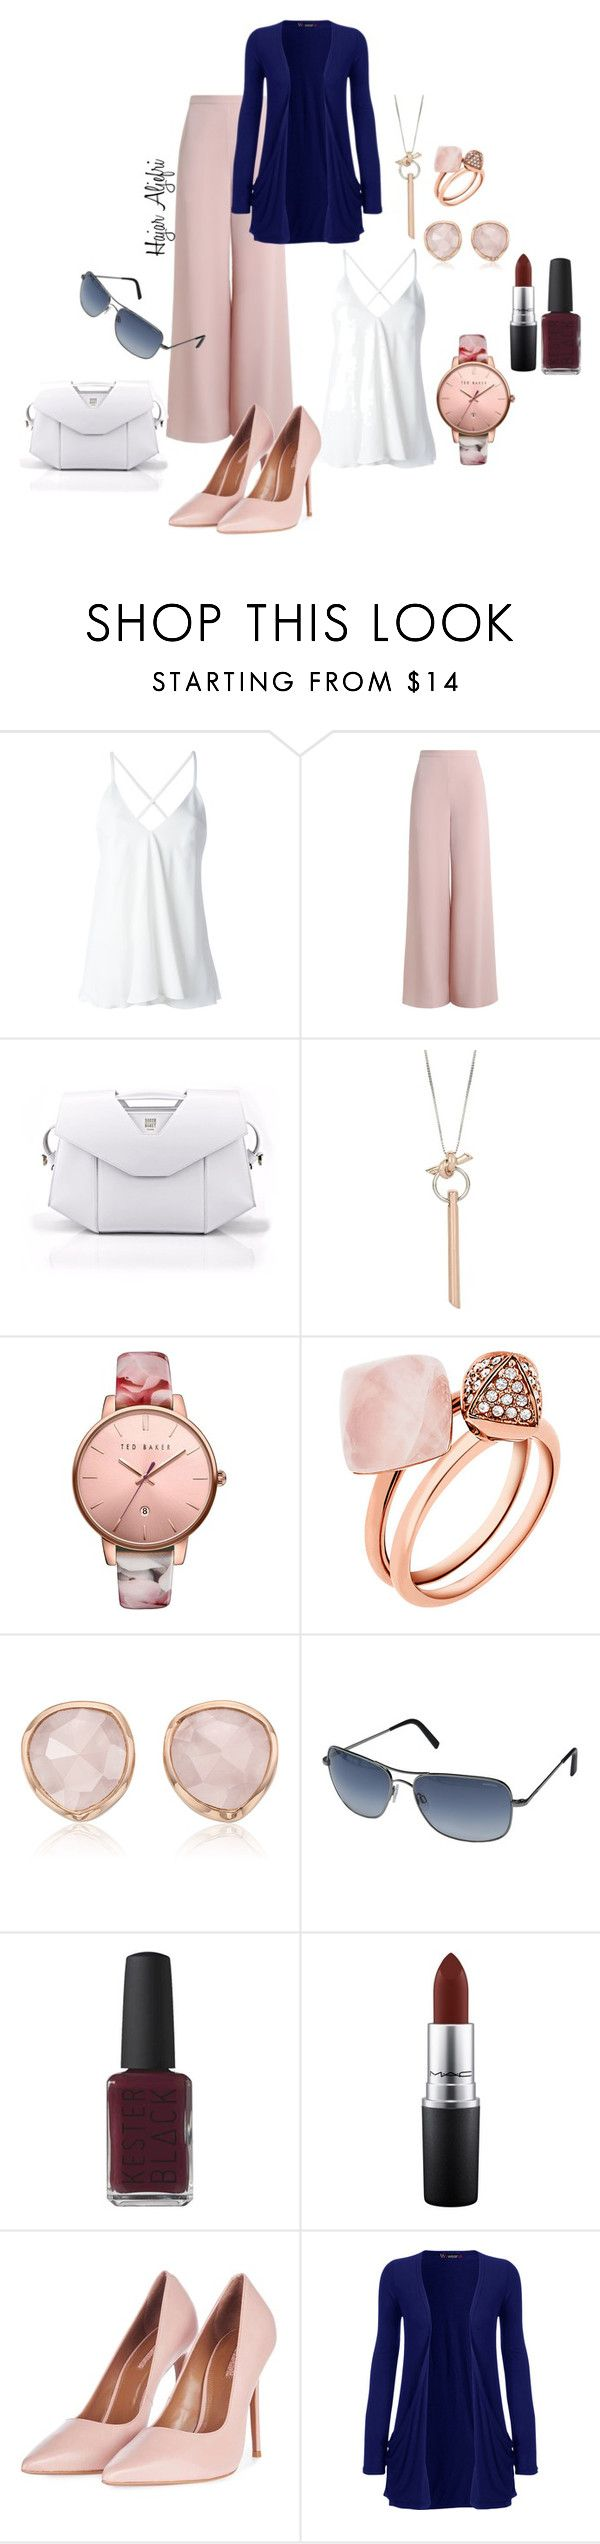 """""""Fashion"""" by hajar-111 on Polyvore featuring Dondup, Zimmermann, Kenneth Cole, Ted Baker, Michael Kors, Monica Vinader, Randolph, MAC Cosmetics, Topshop and WearAll"""